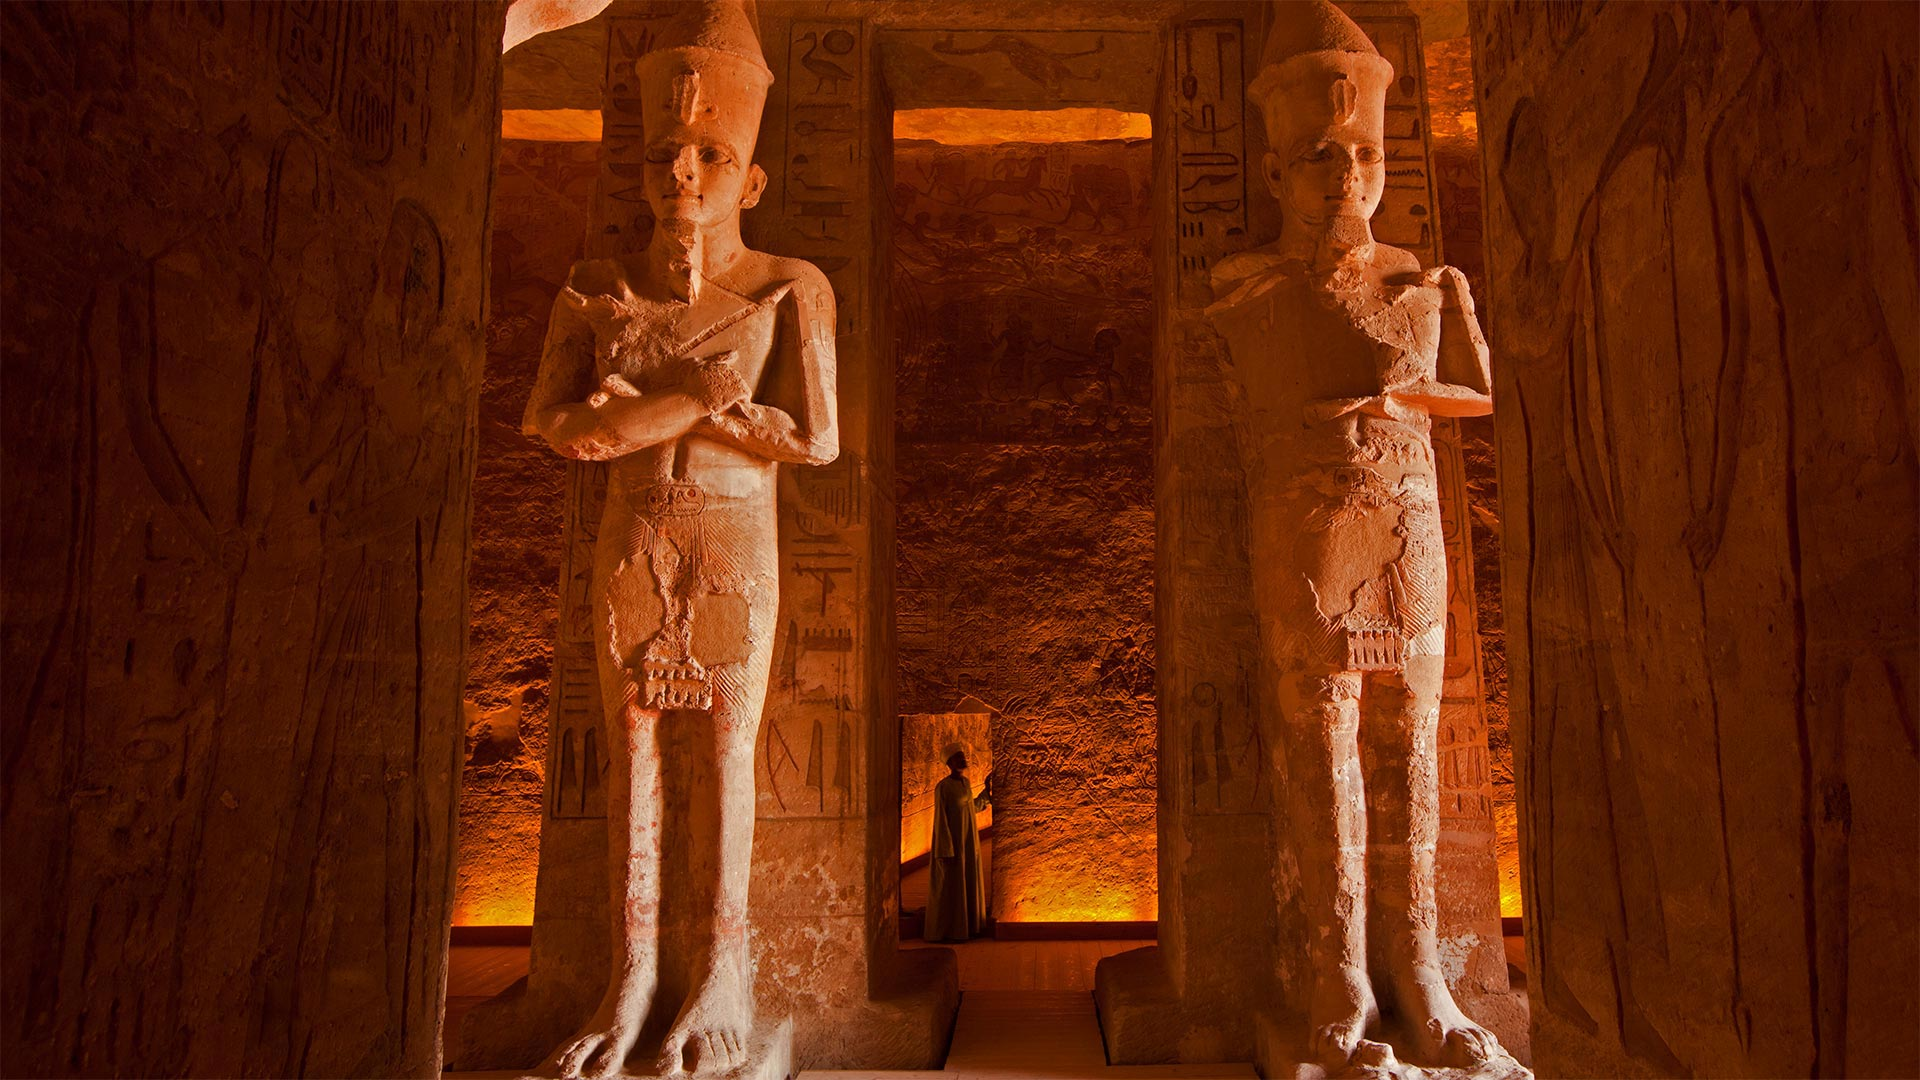 The interior of the Great Temple at Abu Simbel, Egypt (© George Steinmetz/Getty Images)(Bing United States)